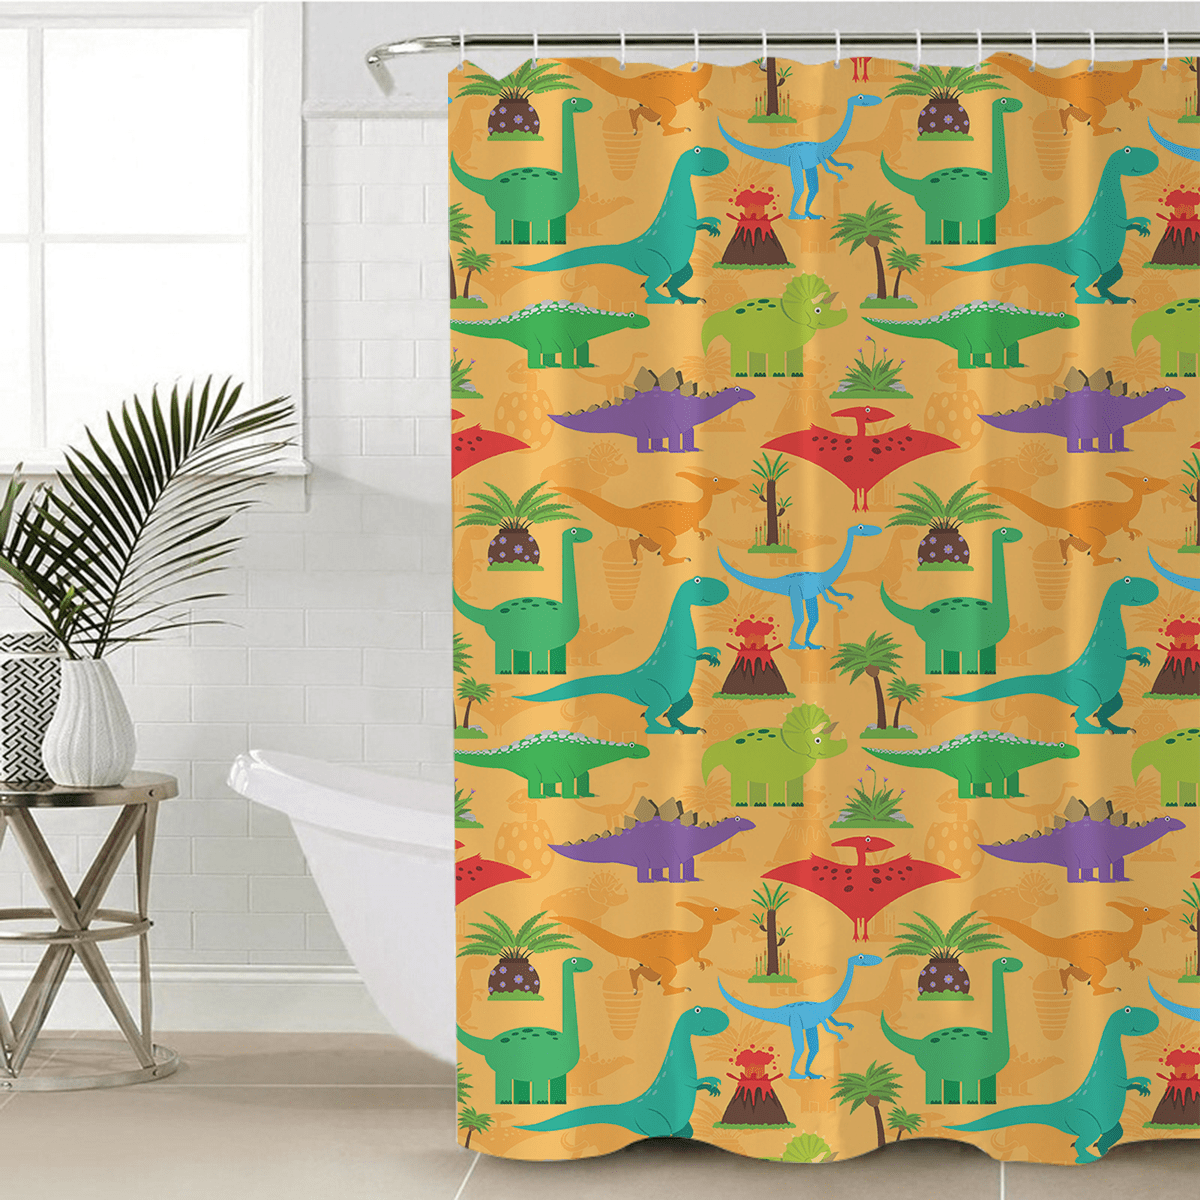 Dinosaur Mania Shower Curtain-Dinosaur Mania-Little Squiffy